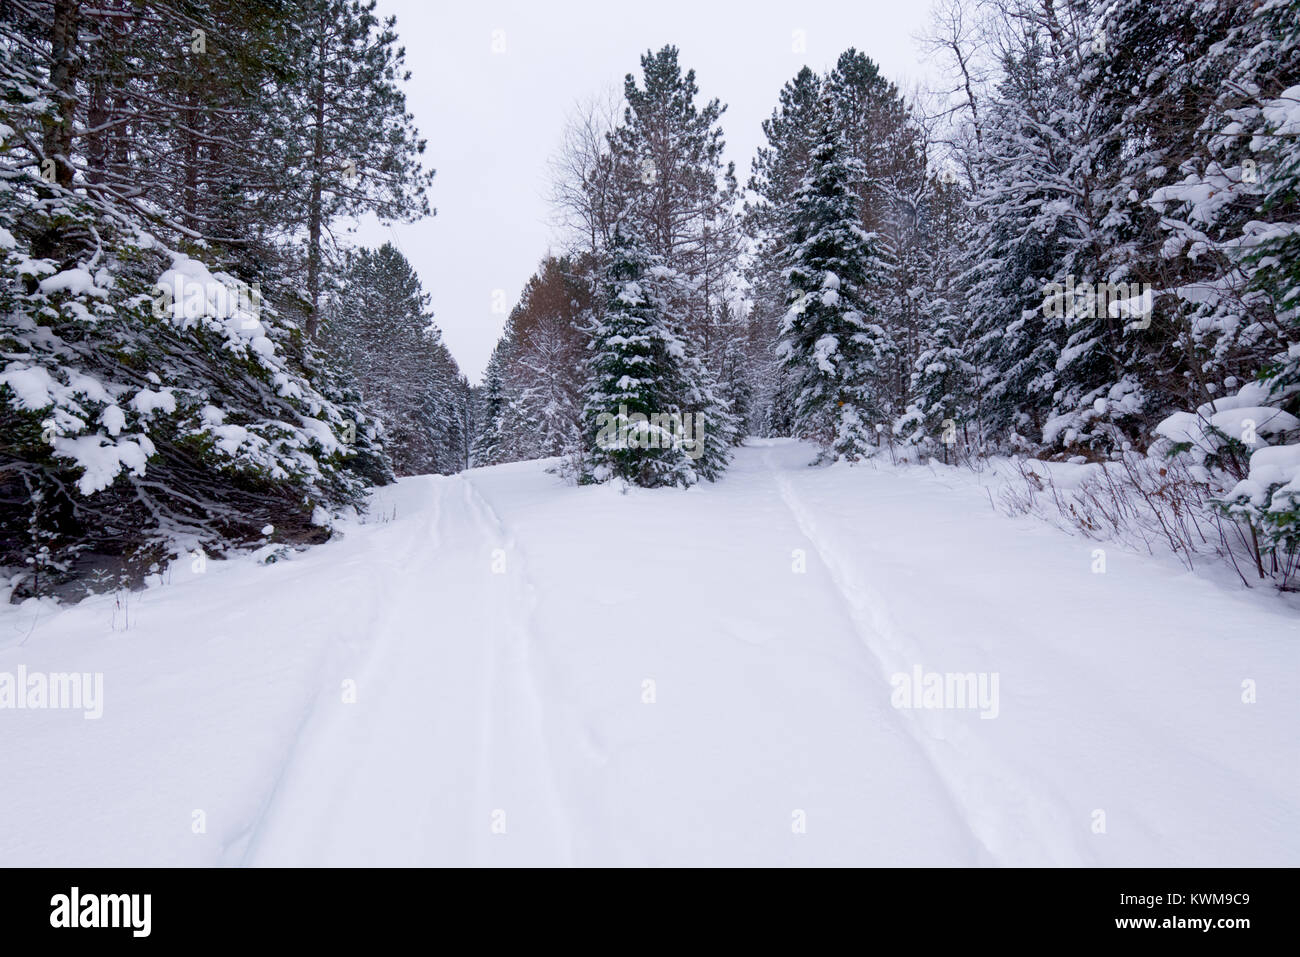 Snowmobile and ski trails in a Canadian winter scene. - Stock Image